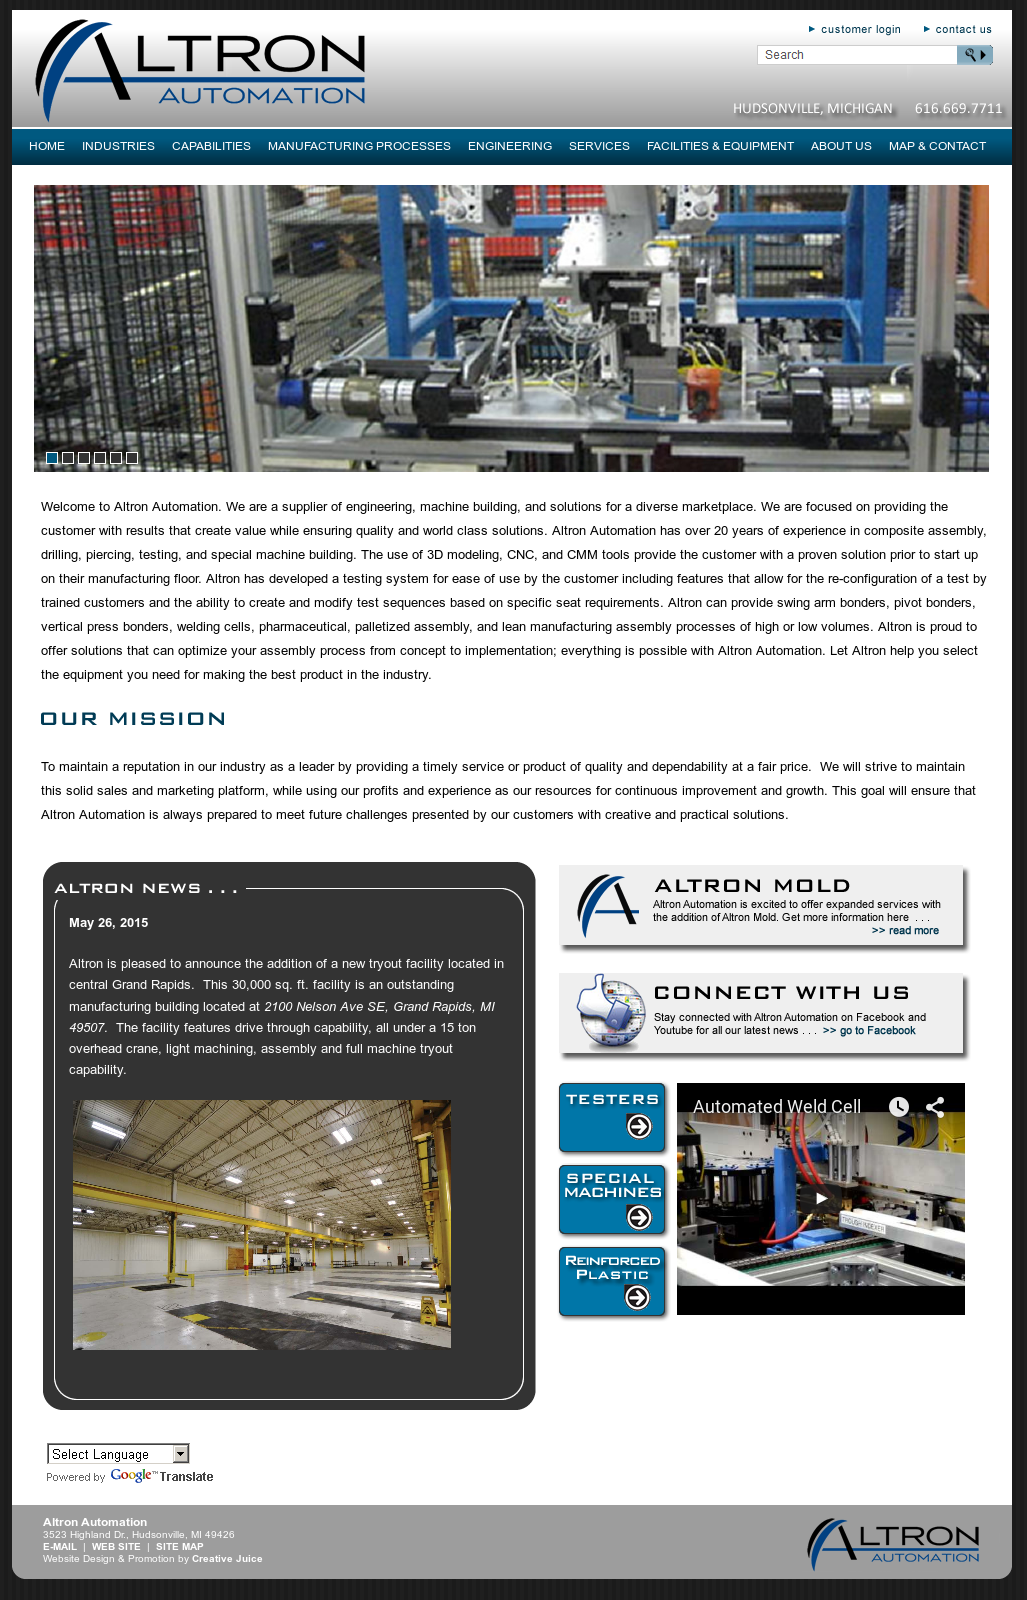 Altron Automation Competitors, Revenue and Employees - Owler